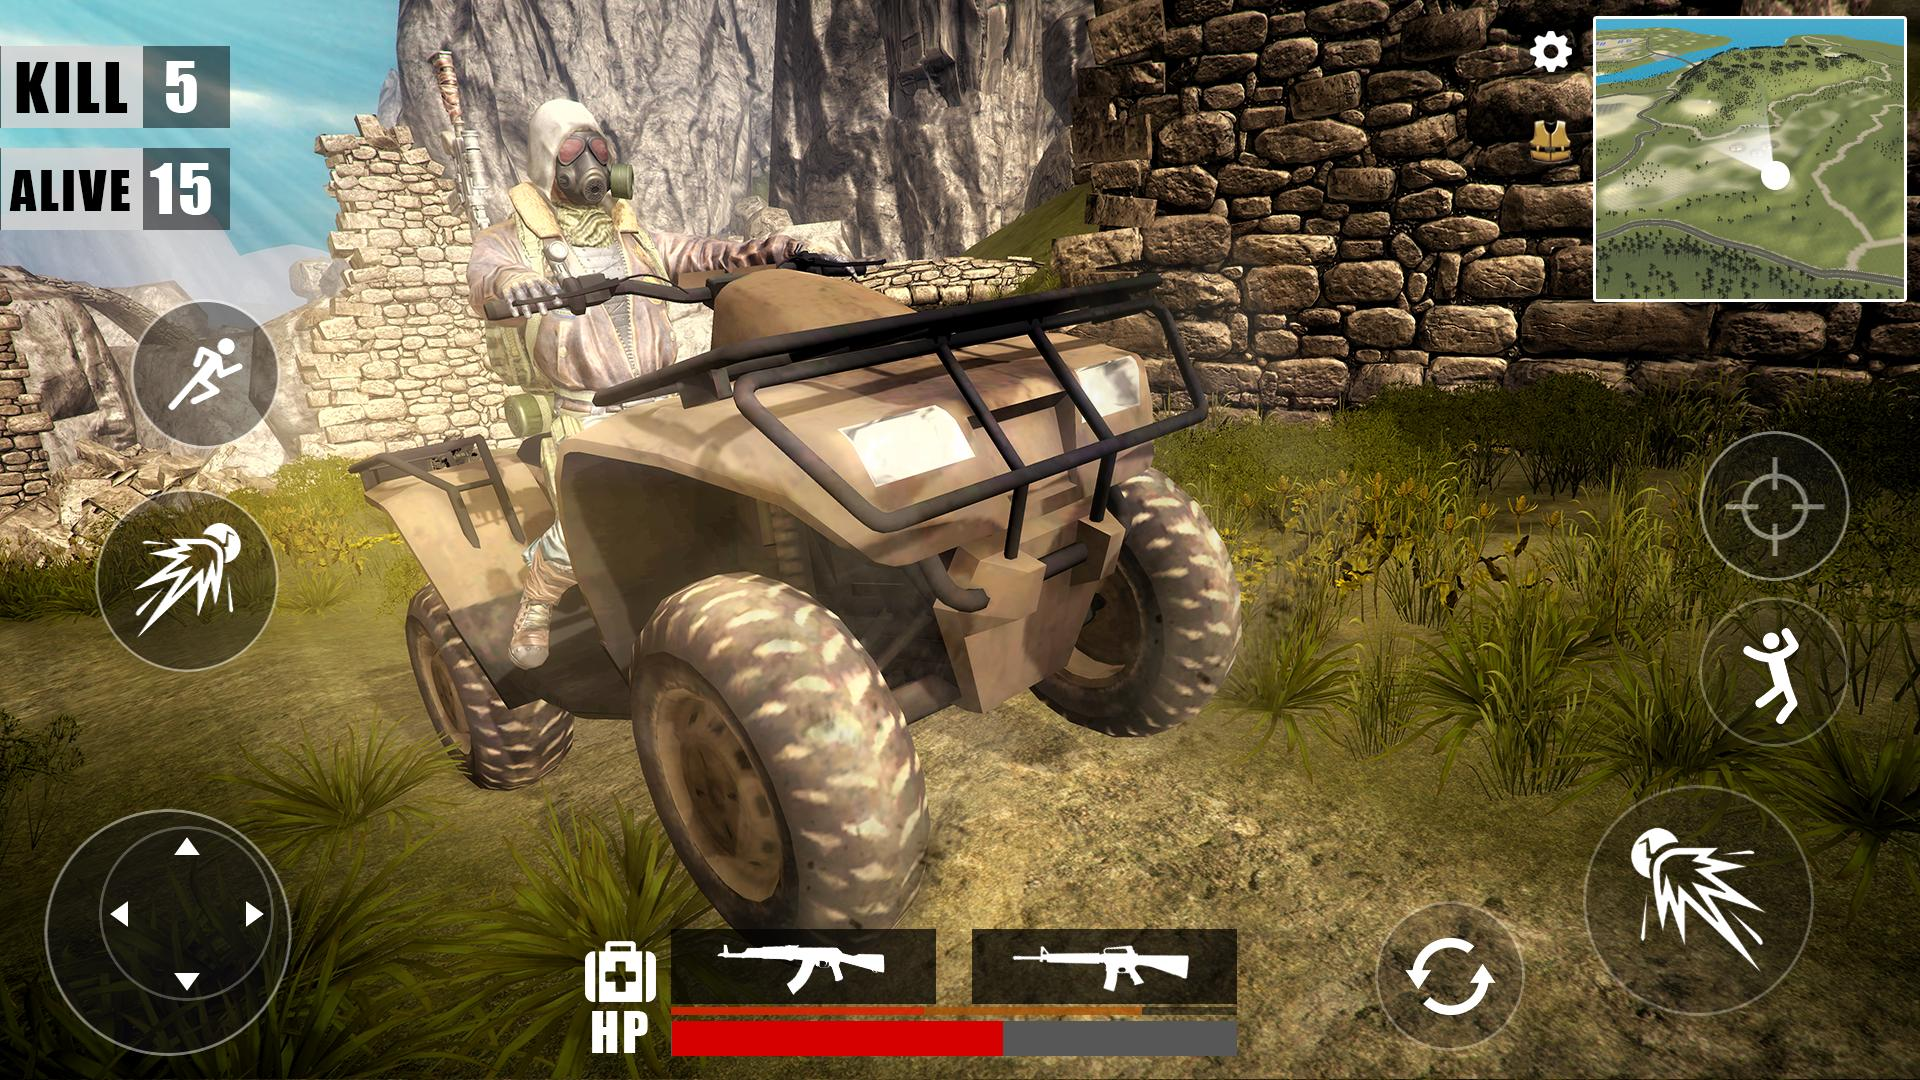 Survival Battleground Free Fire : Battle Royale for Android